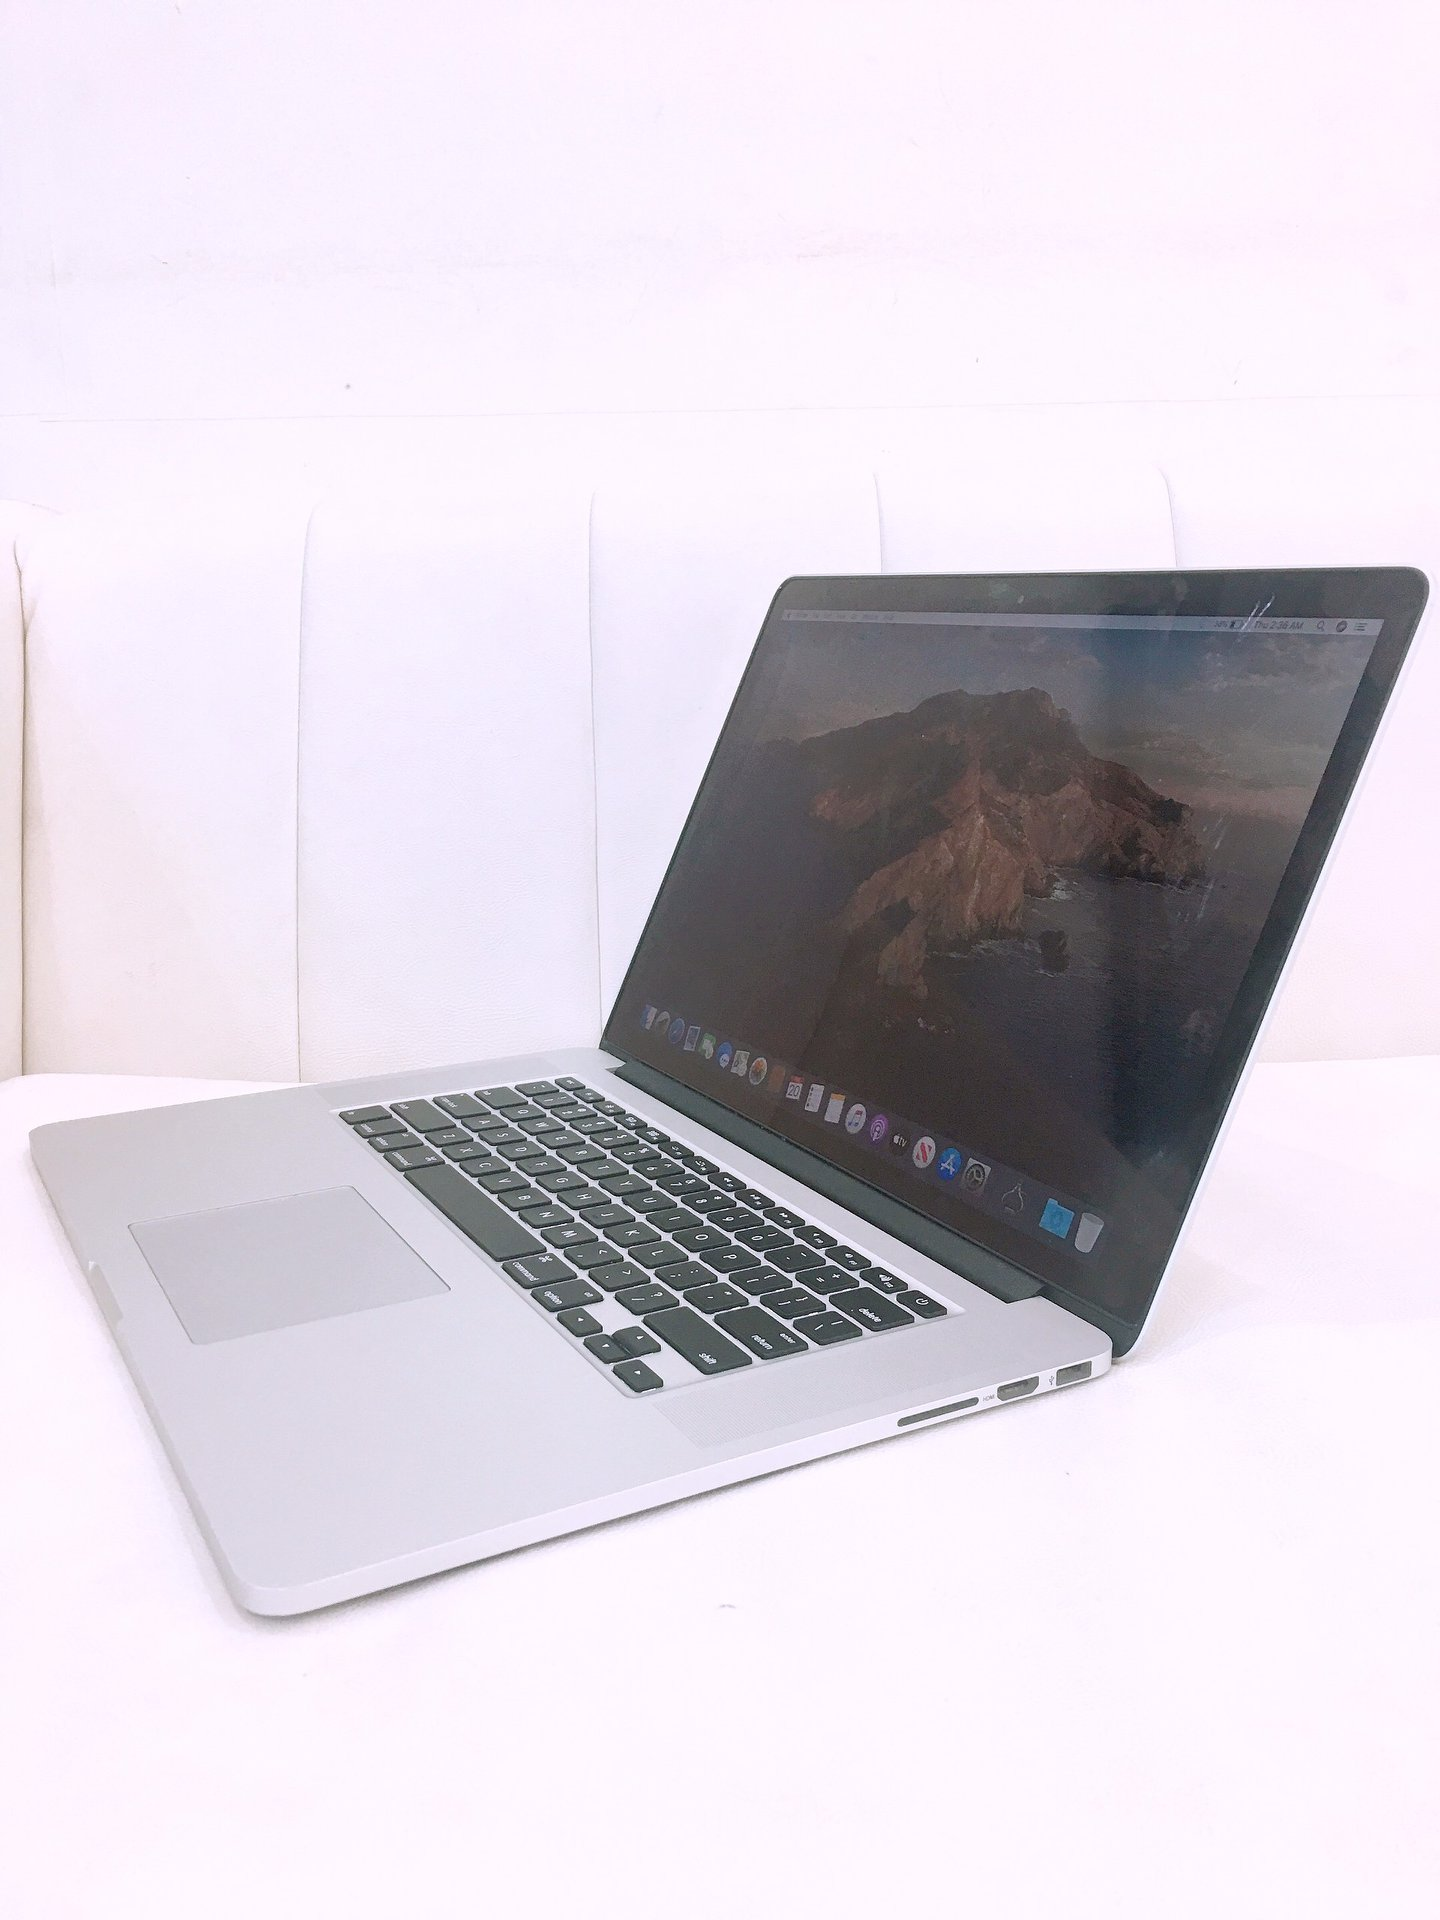 macbook-pro-15-inch-2015-mjlt2-cu-core-i7-2-8ghz-ram-16gb-ssd-1tb-vga-amd-radeon